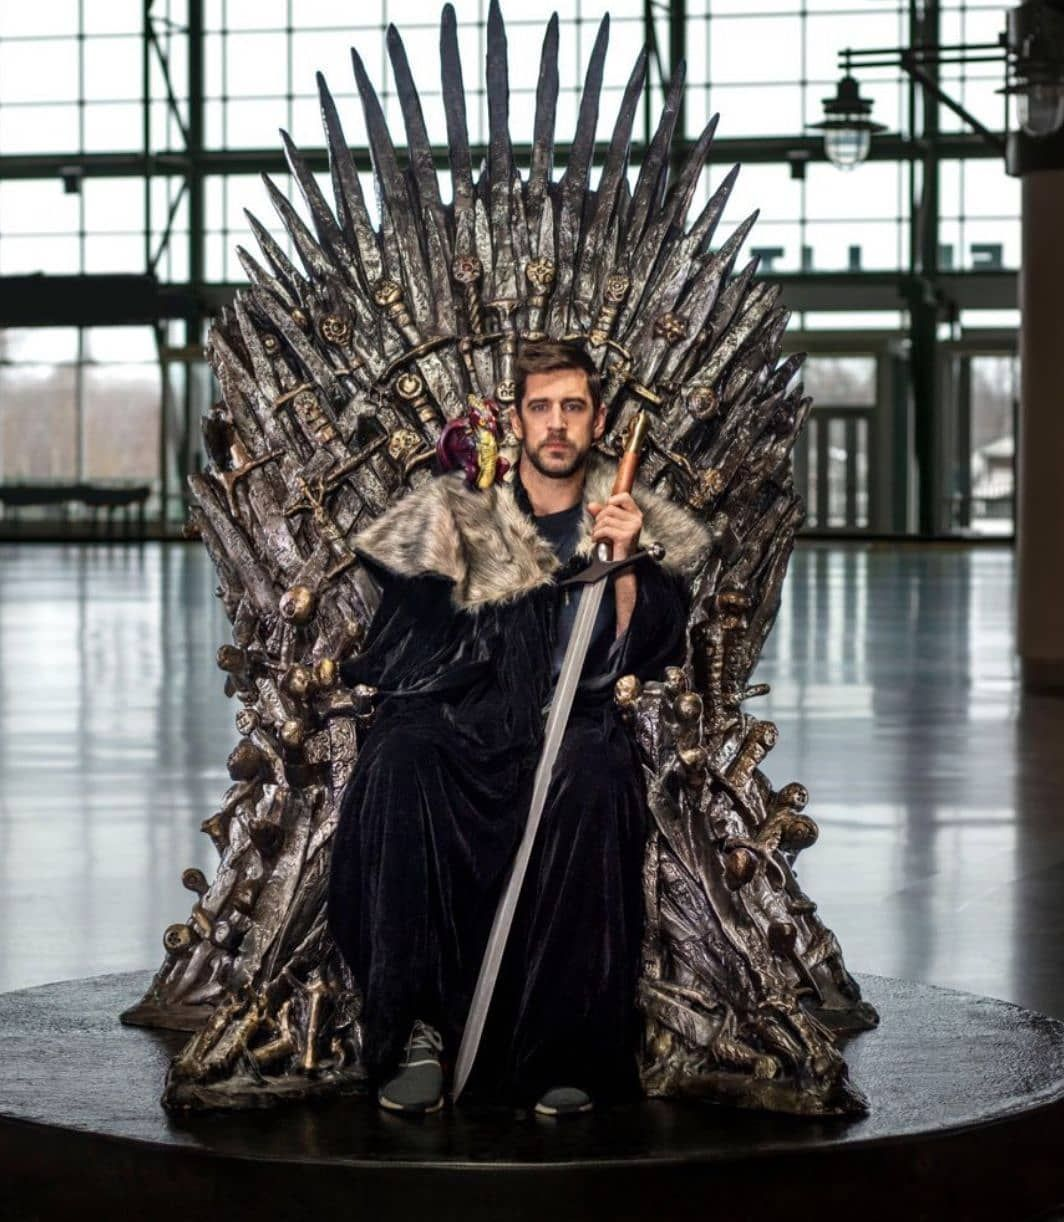 Rodgers Will Appear On The Next Episode Of Game Of Thrones Gopackgo Packers Greenandgold Aaron Rodgers King In The North Green Bay Packers